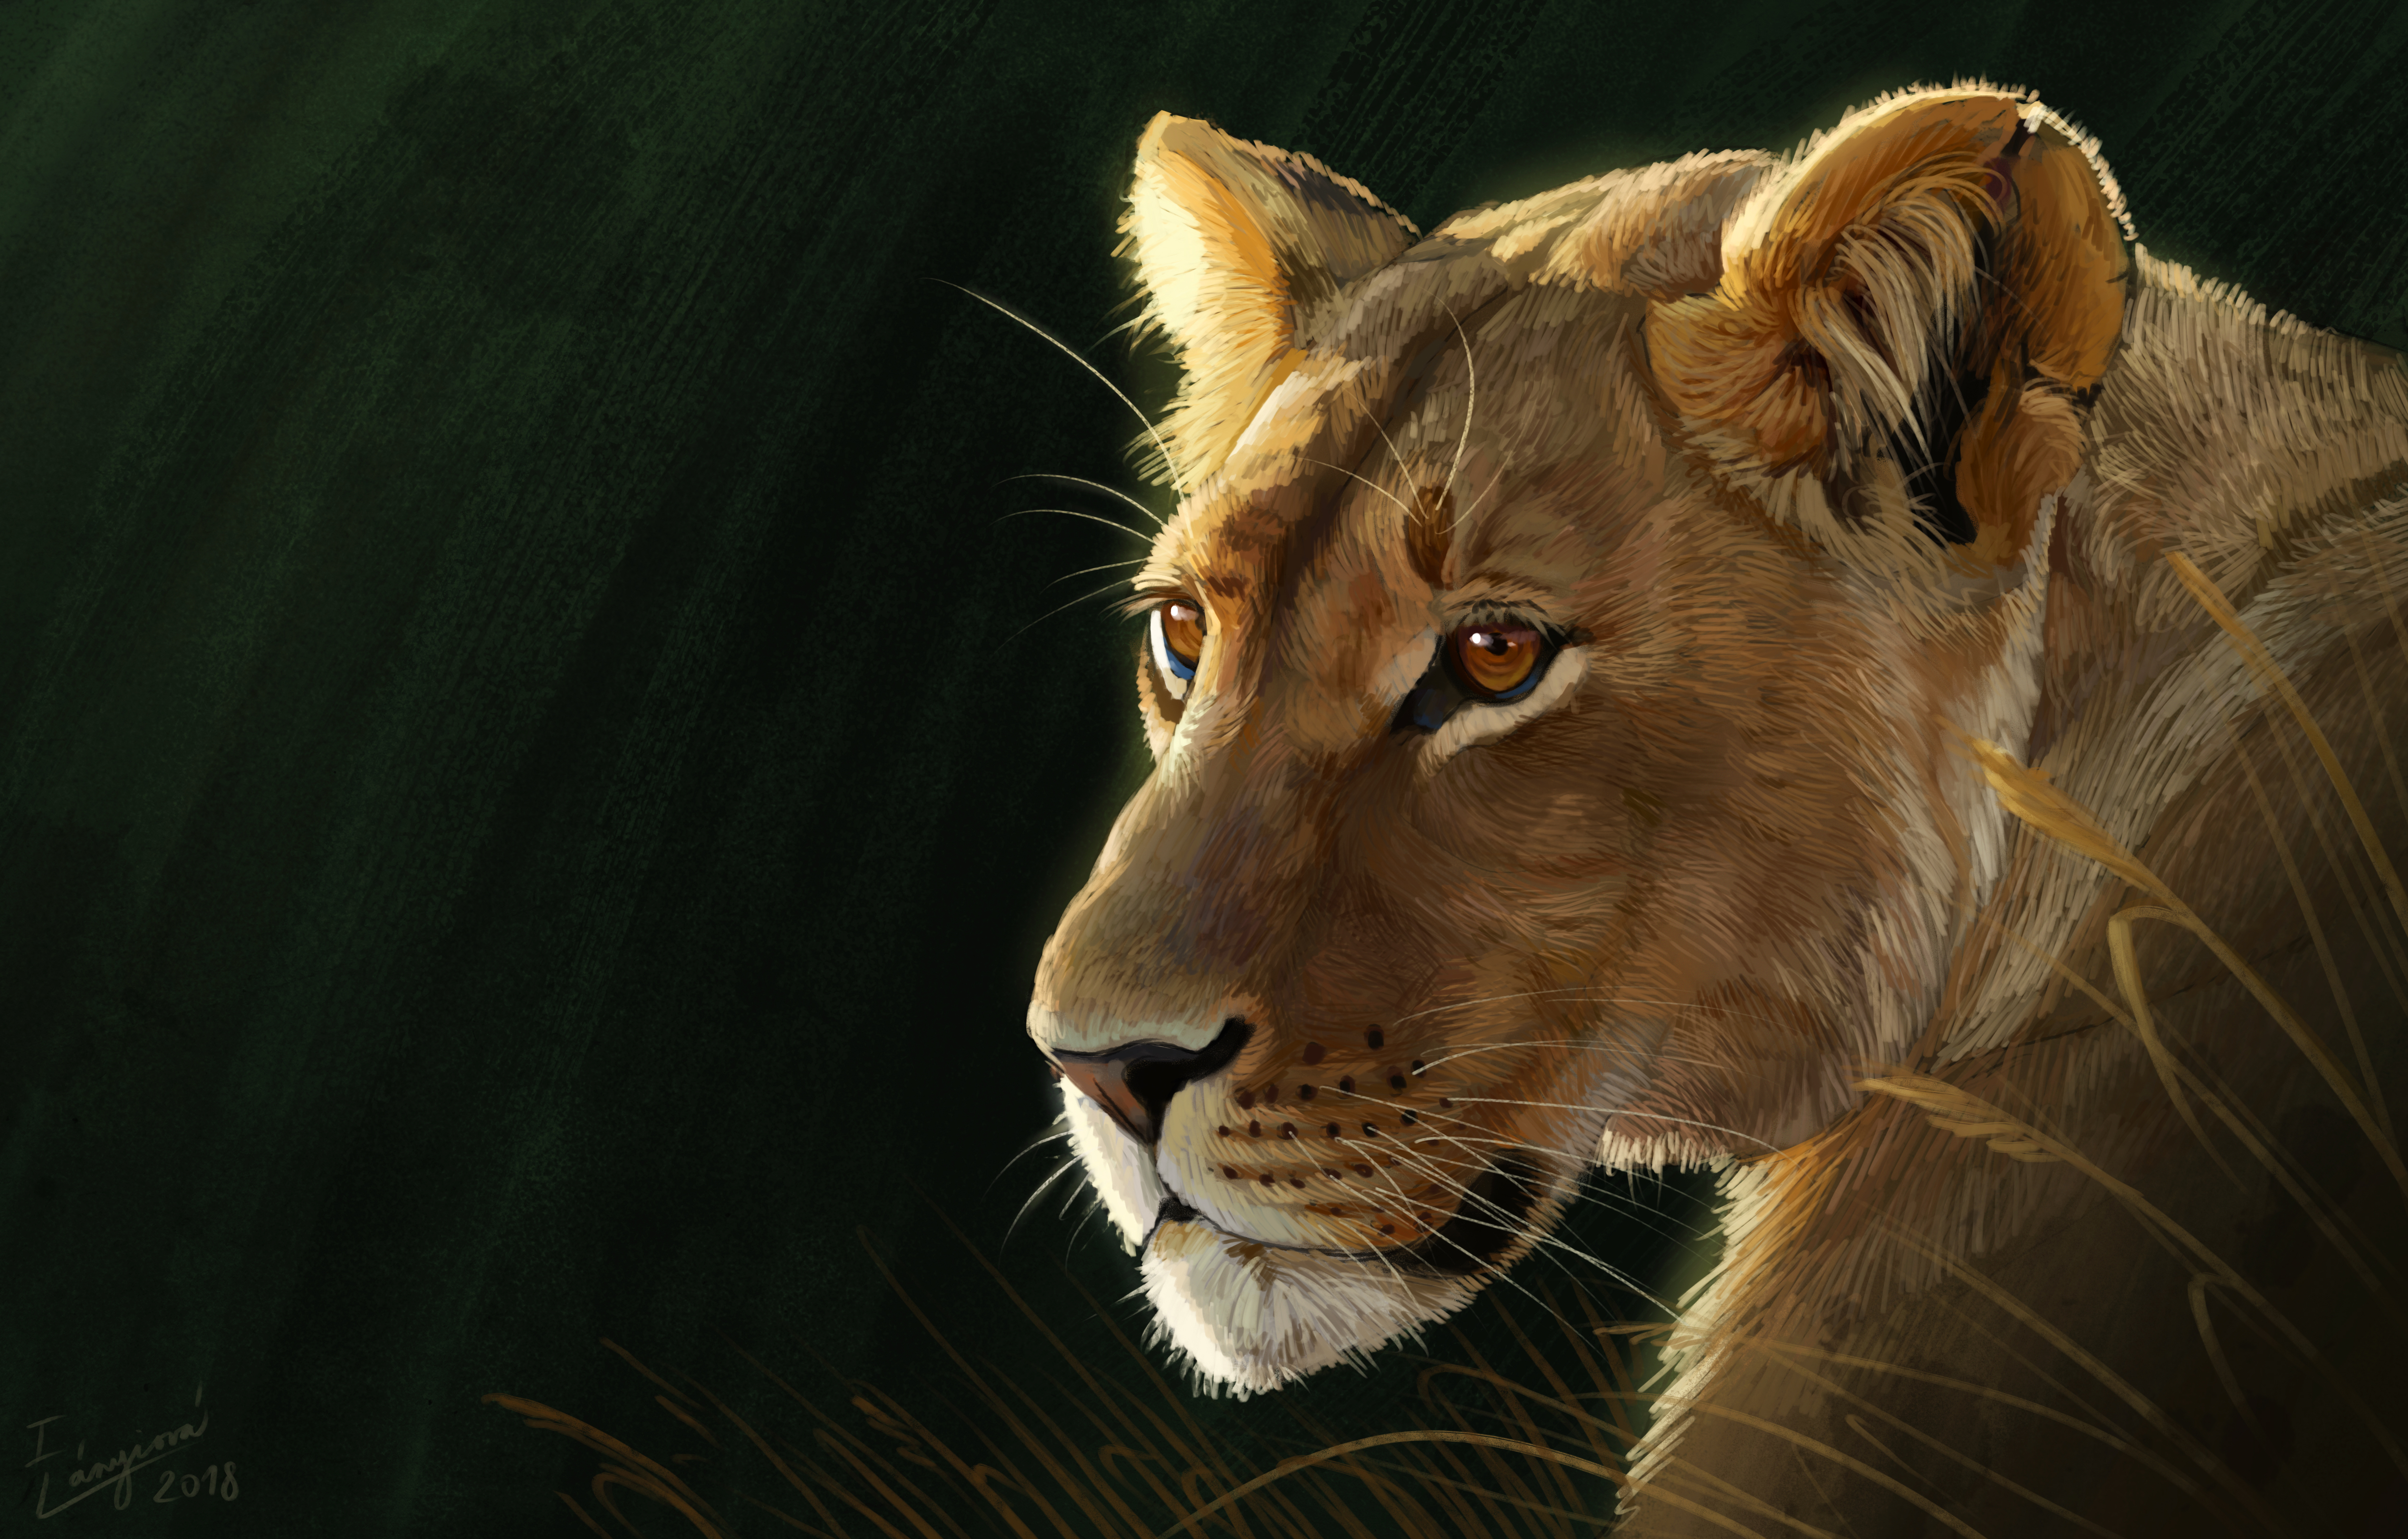 146191 download wallpaper Lioness, Big Cat, Predator, Sight, Opinion, Art screensavers and pictures for free